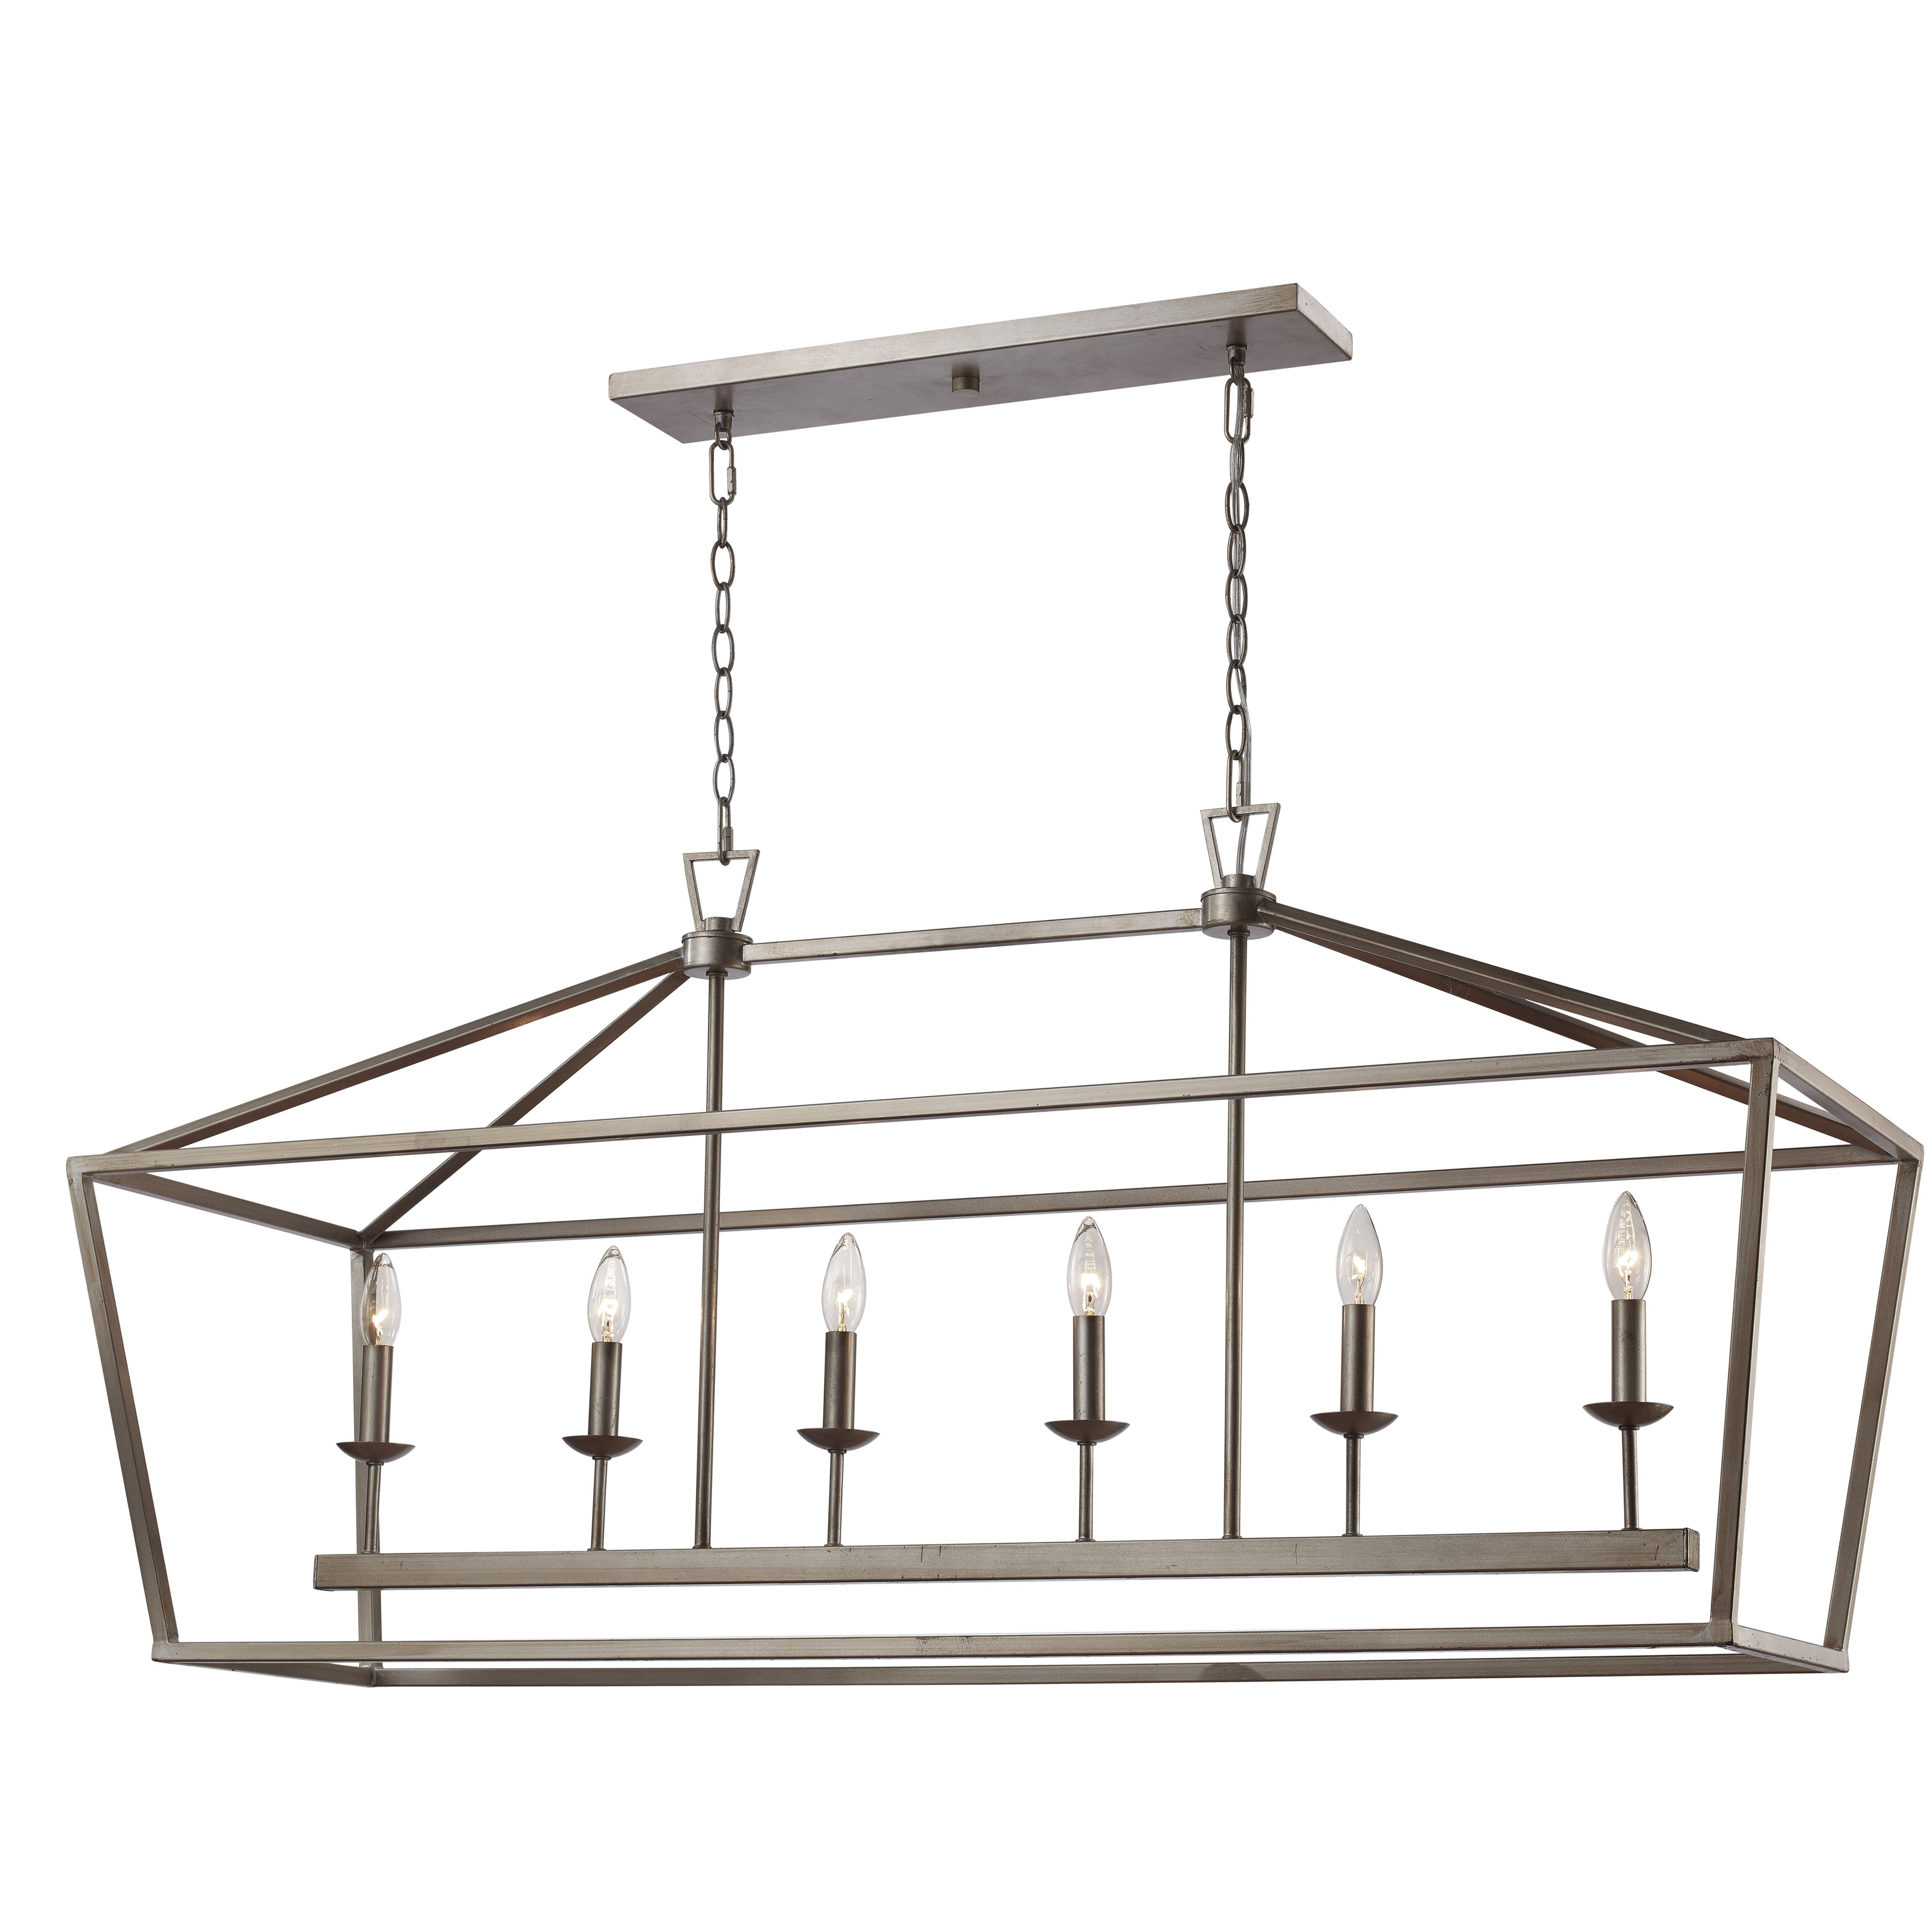 Laurel Foundry Modern Farmhouse Carmen 6-Light Geometric Pendant & Reviews | Wayfair.ca